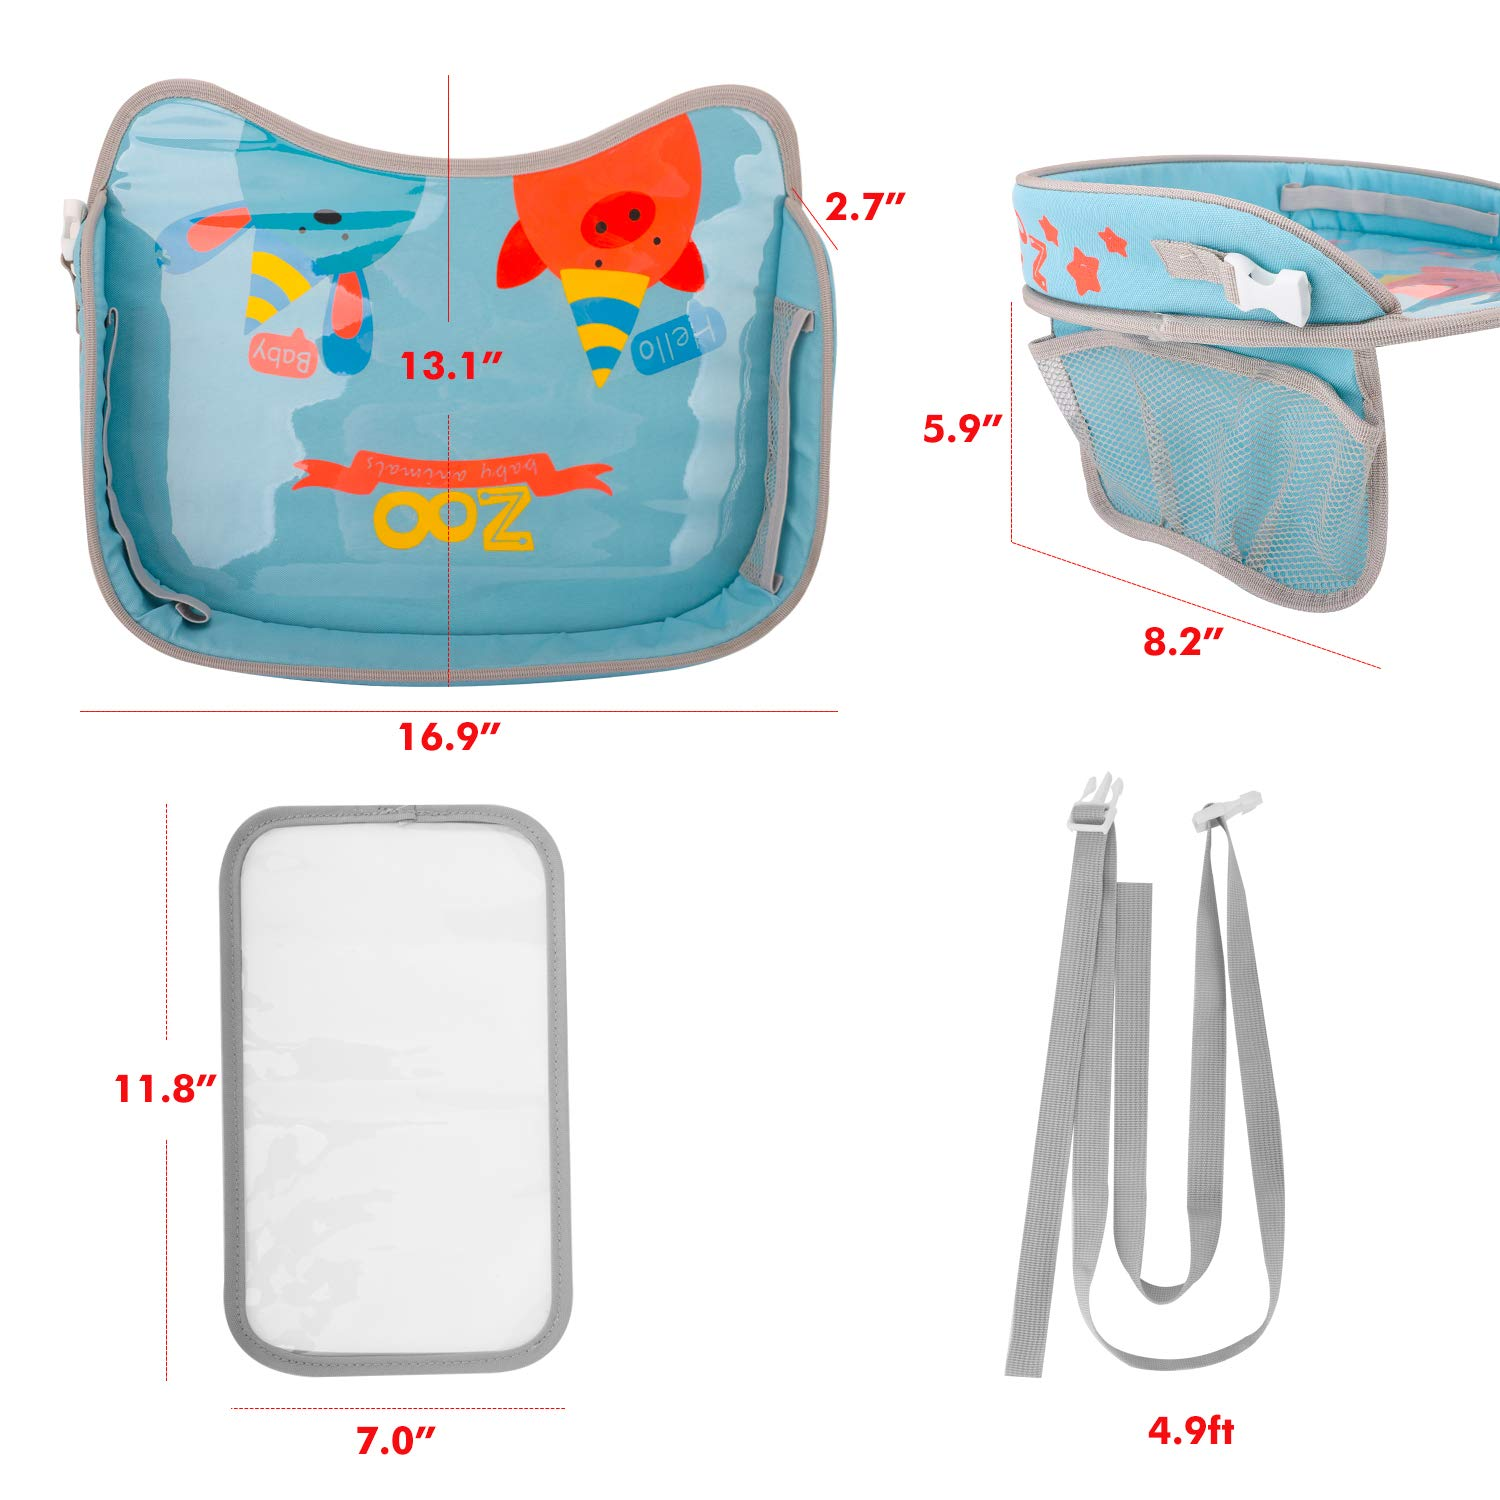 Drink Toddlers Activity Play Tray /& Organizer for Snack Zooawa Kids Car Seat Travel Tray Toys Blue